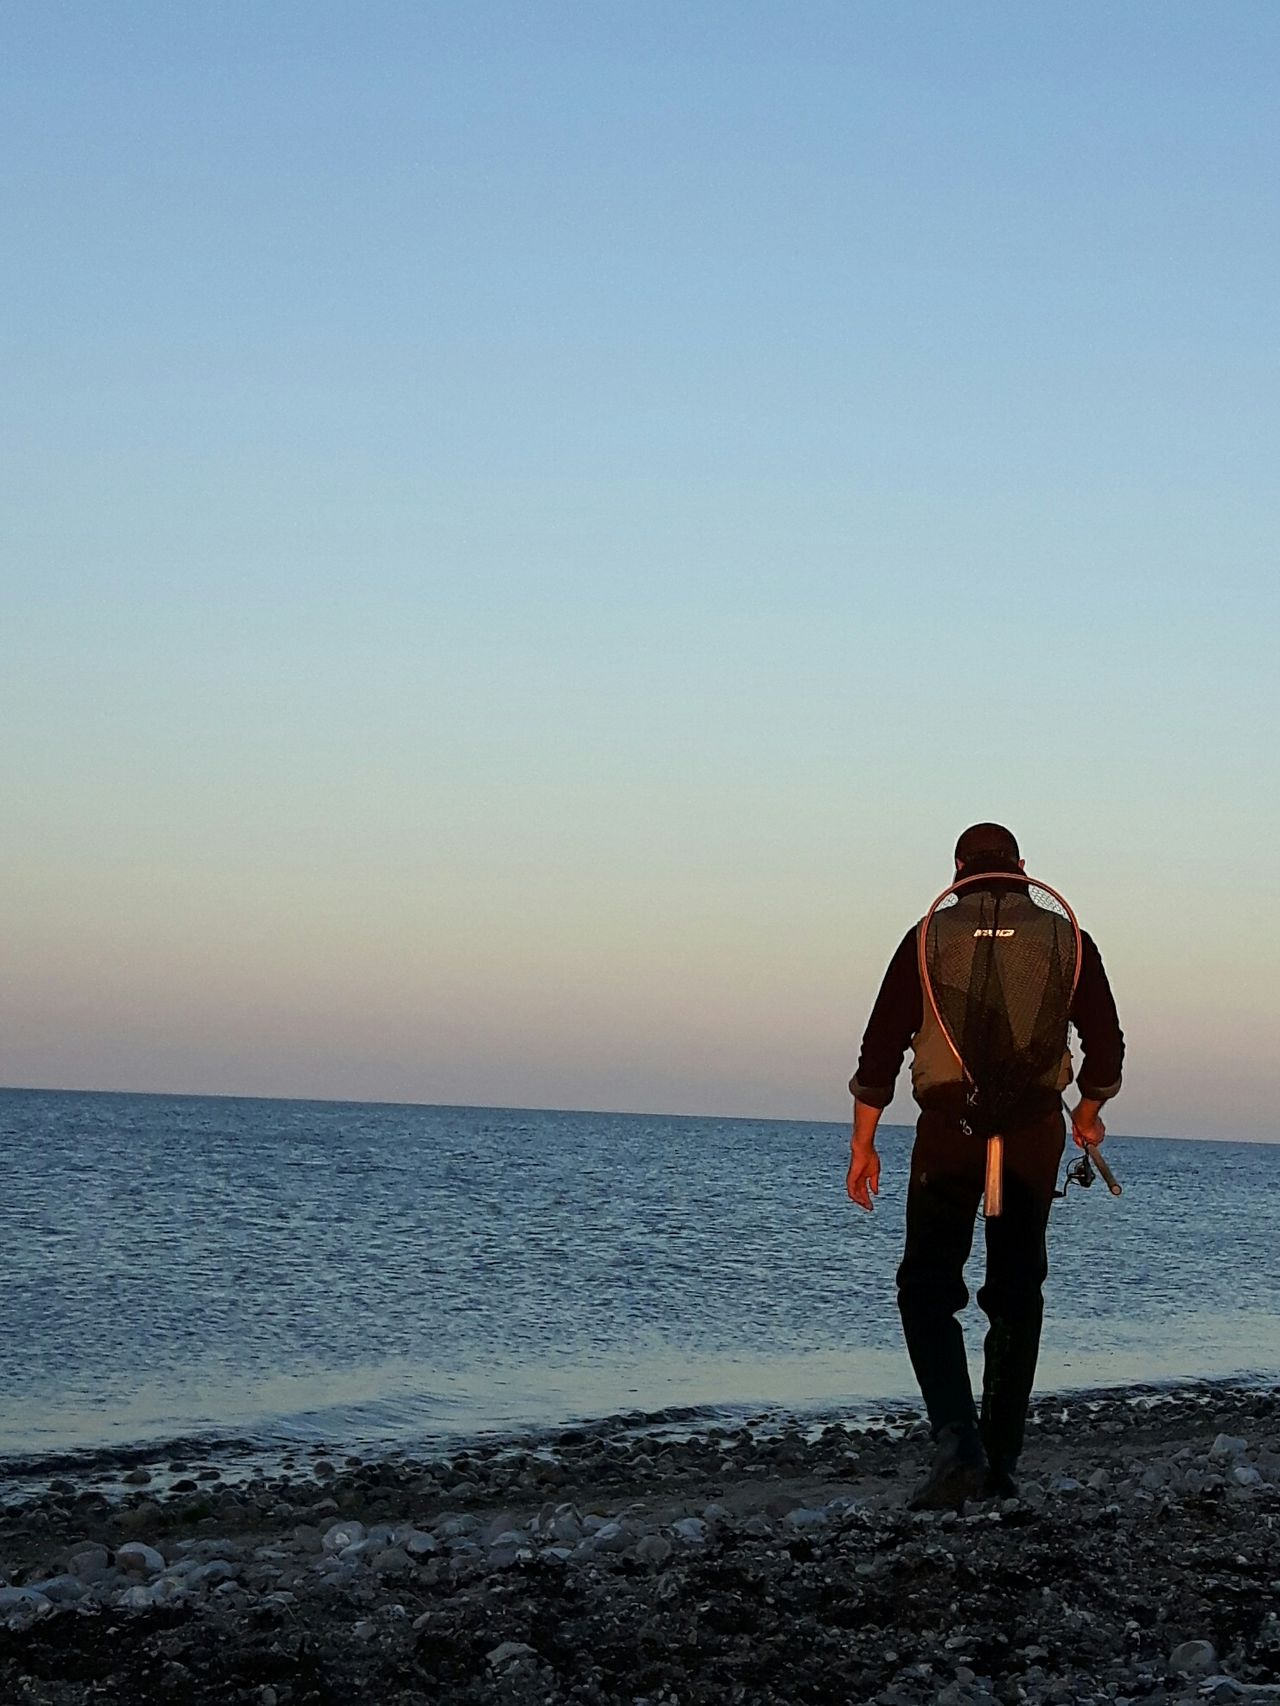 Gone fishing Beach Sea Adult Horizon Over Water Adults Only Clear Sky Full Length Sky Men People Sand Love Bonding Nature Beauty In Nature Outdoors Sunset Scenics Gone Fishing Fisherman Fehmarn Baltic Sea